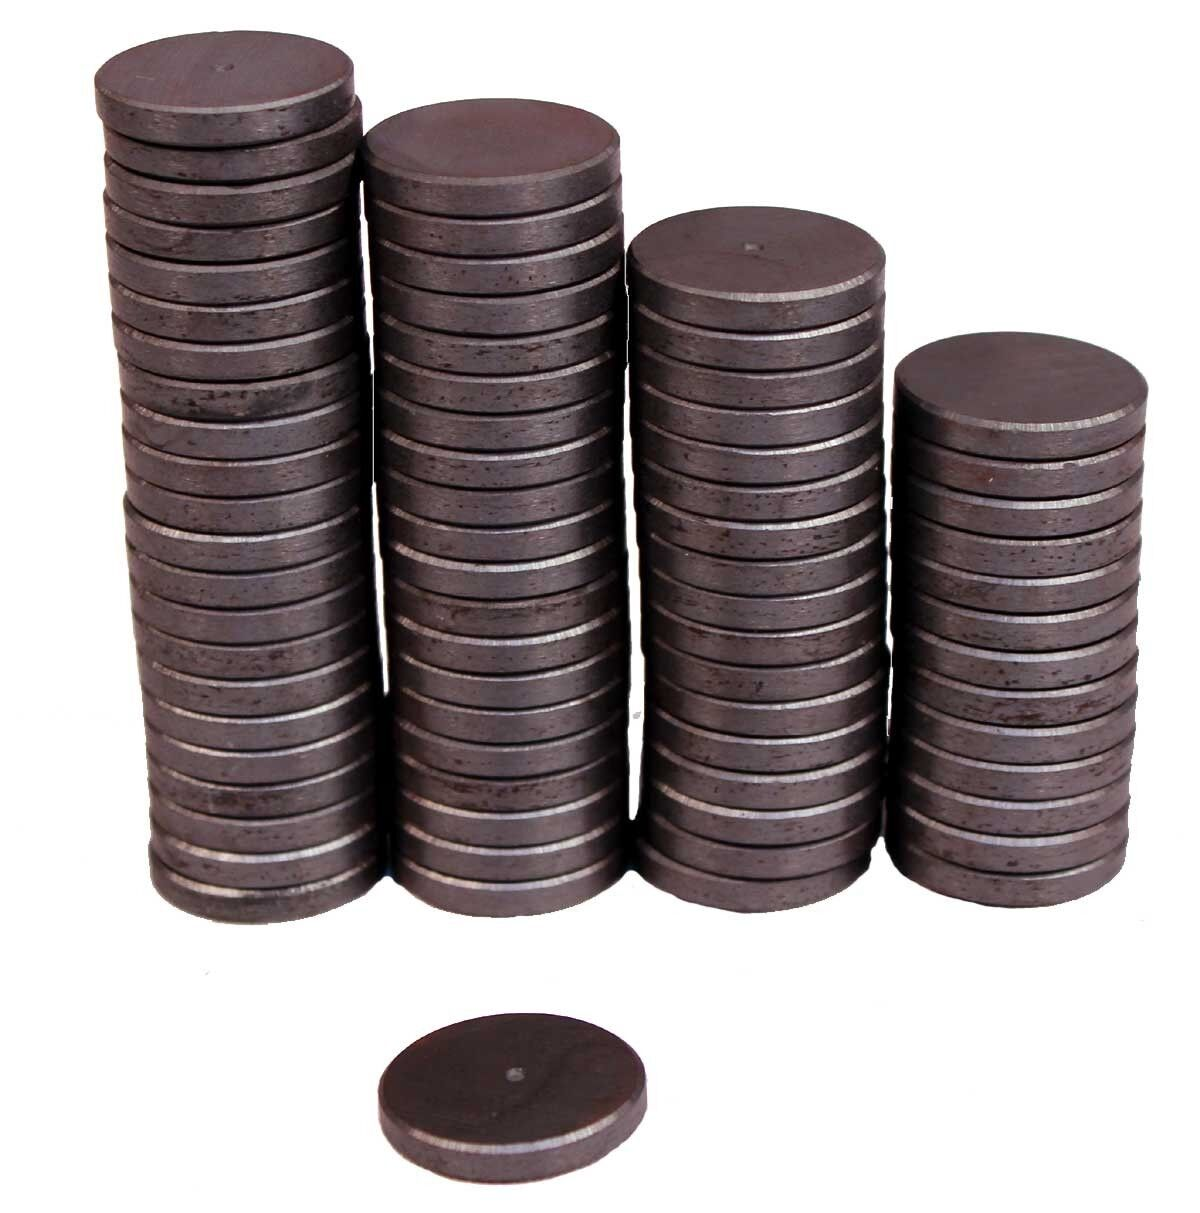 Strong 1″ Round Flat Ceramic Disc Magnets For DIY Crafts ~ Lot of 50 Pieces All-Purpose Craft Supplies